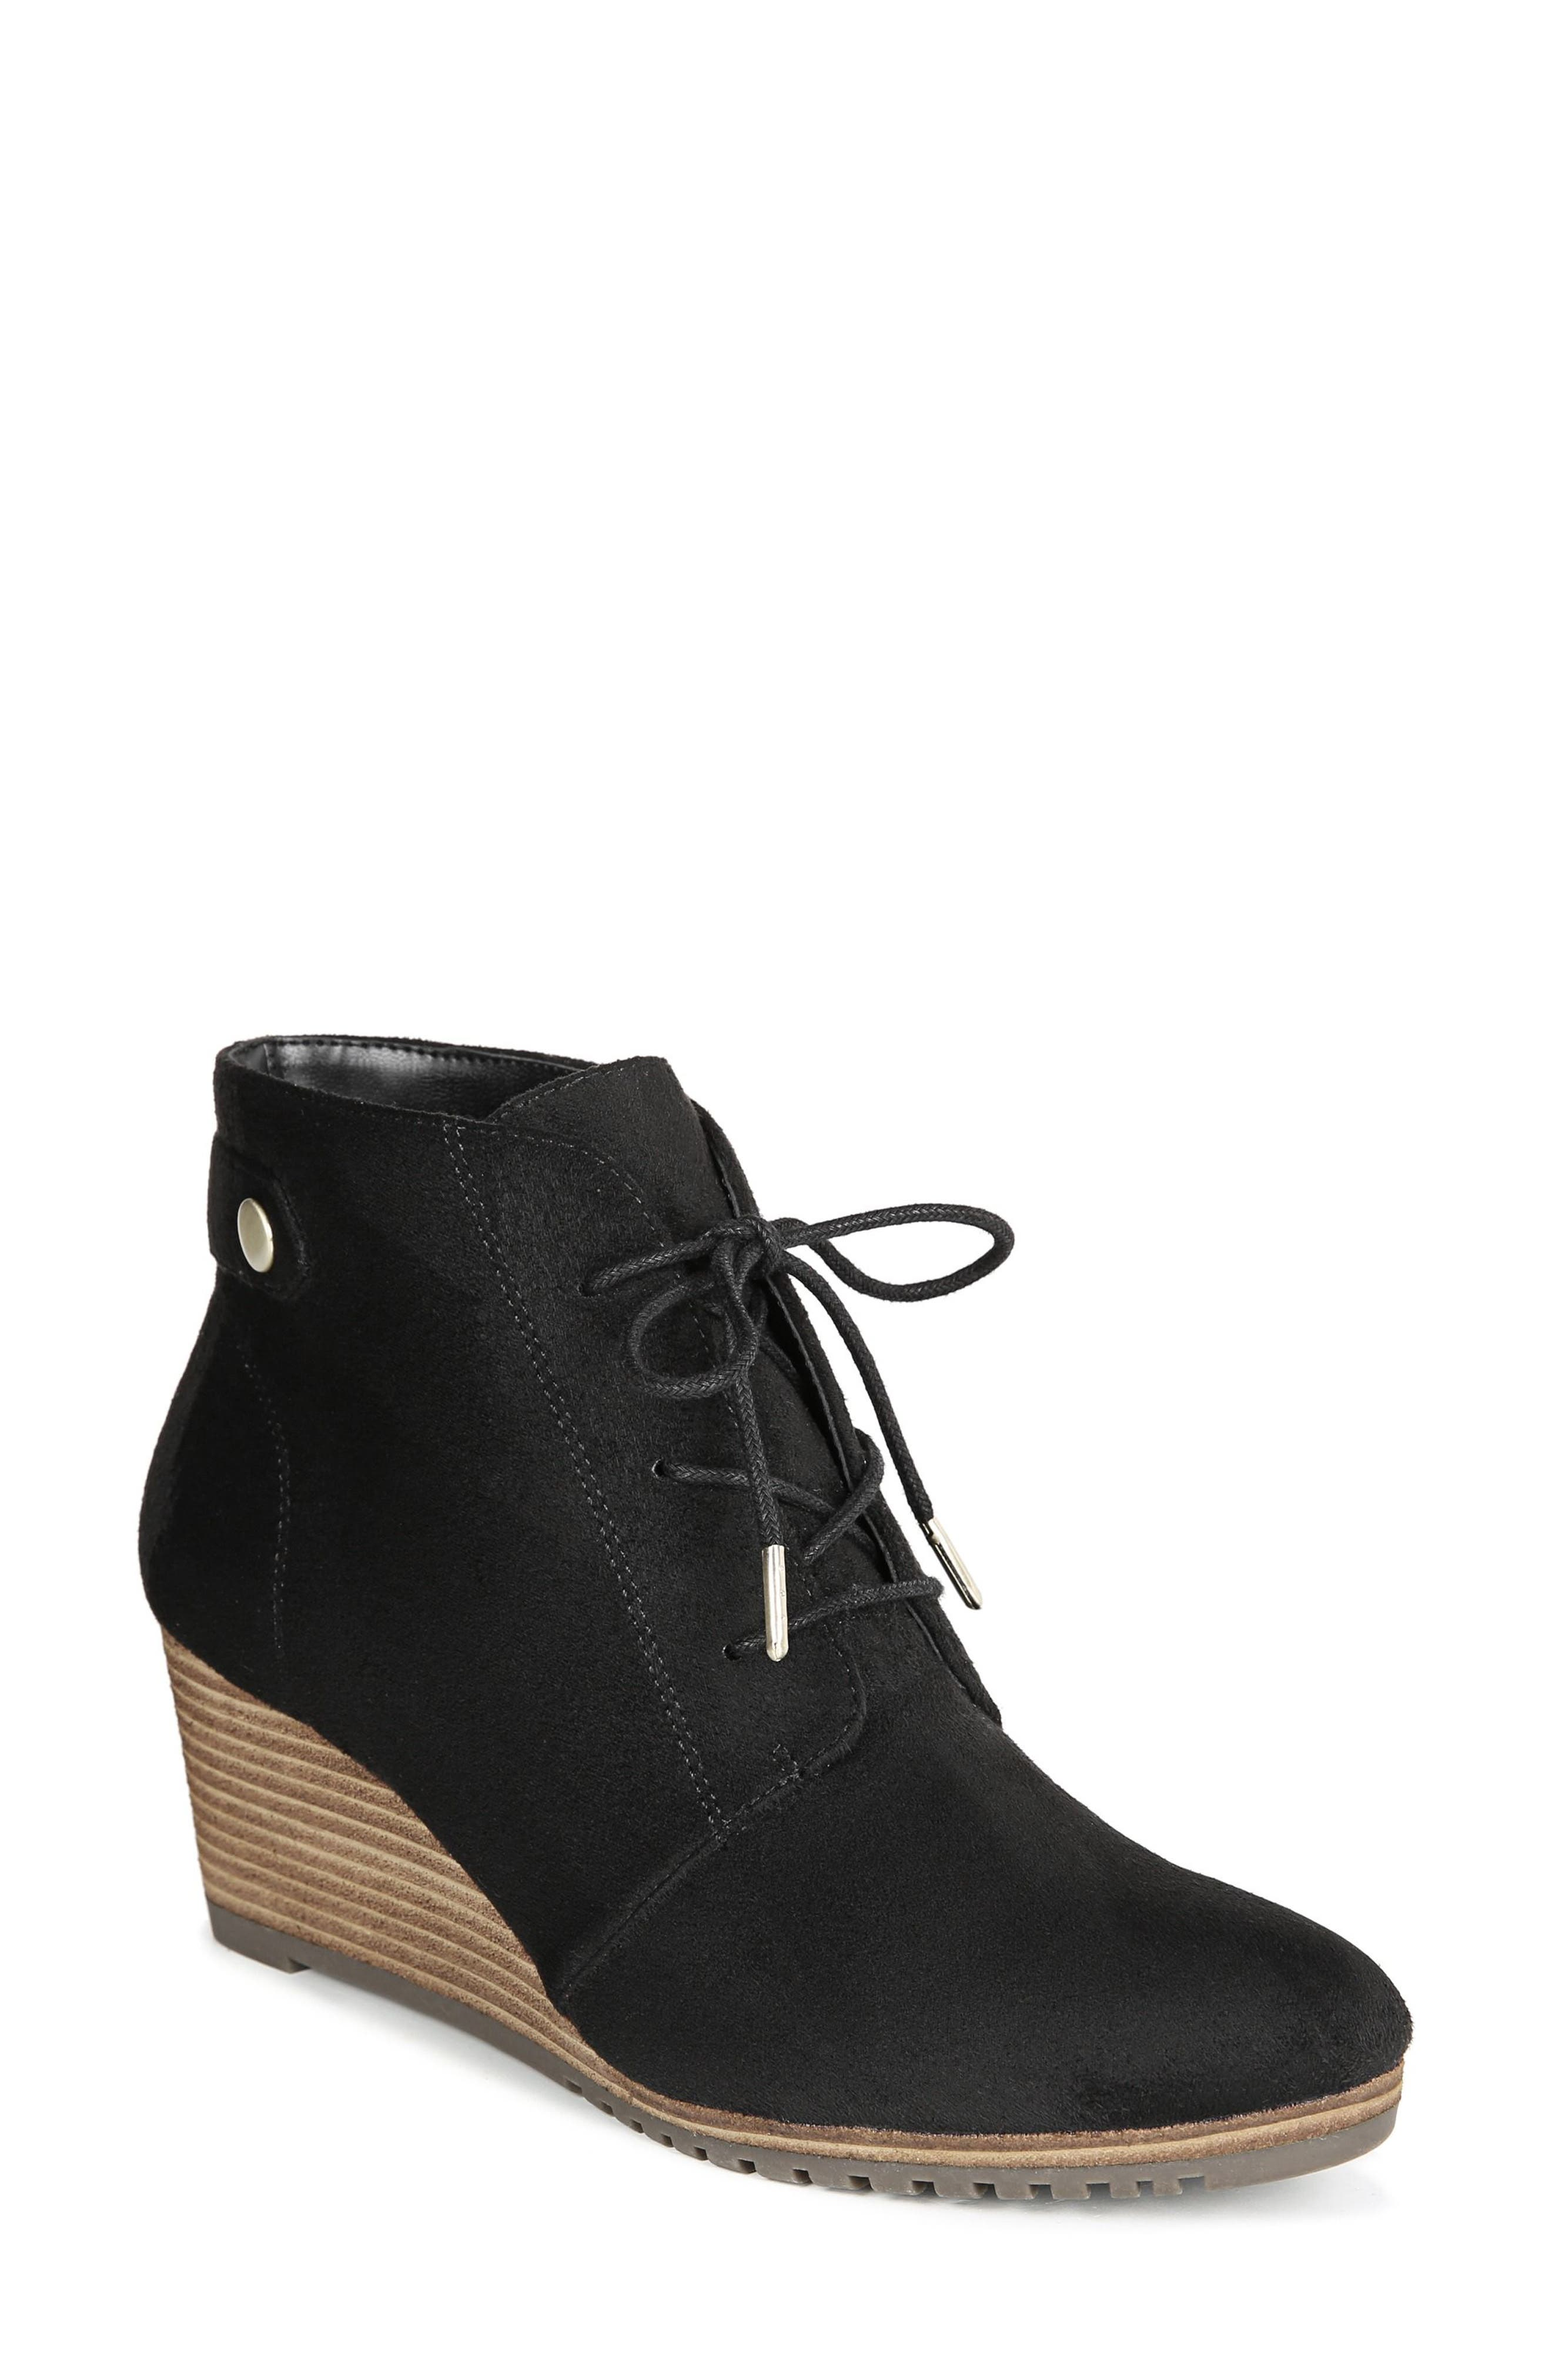 Conquer Wedge Bootie,                             Main thumbnail 1, color,                             BLACK FABRIC